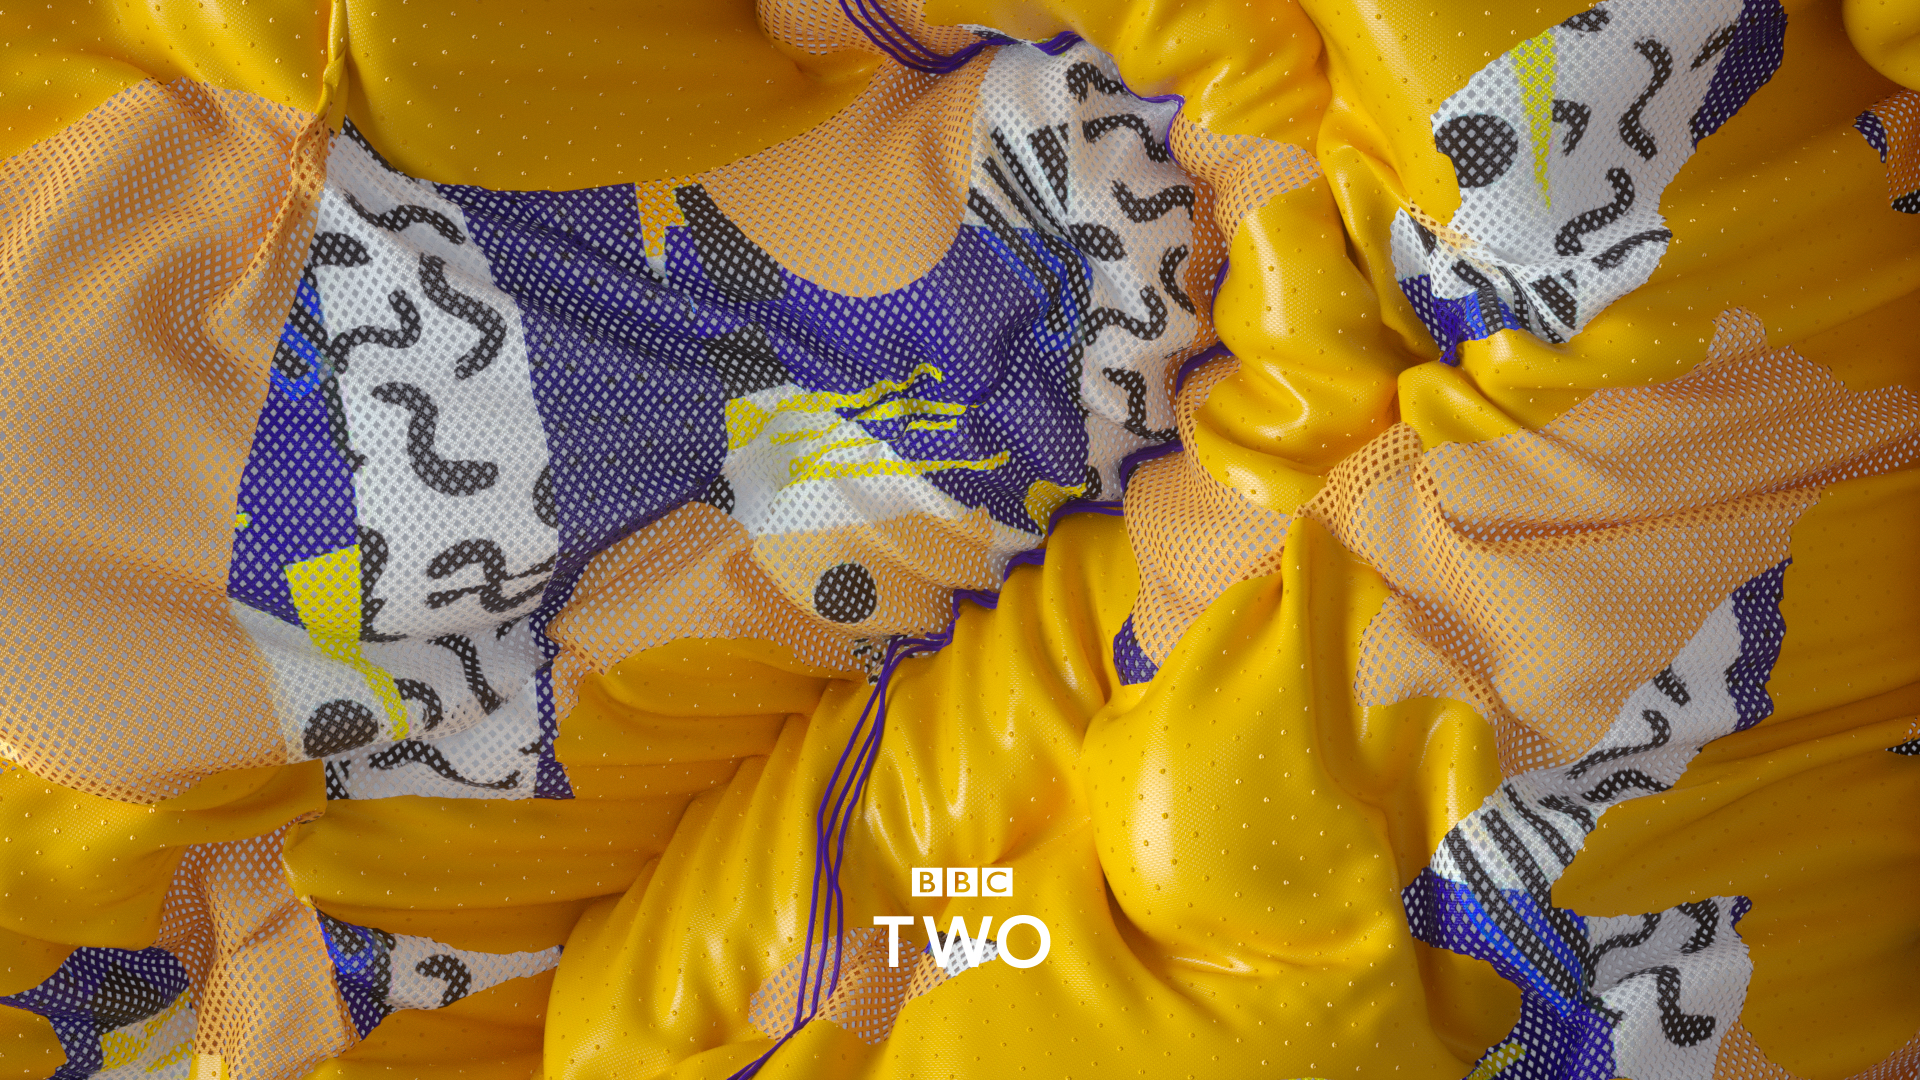 BBC_two_02